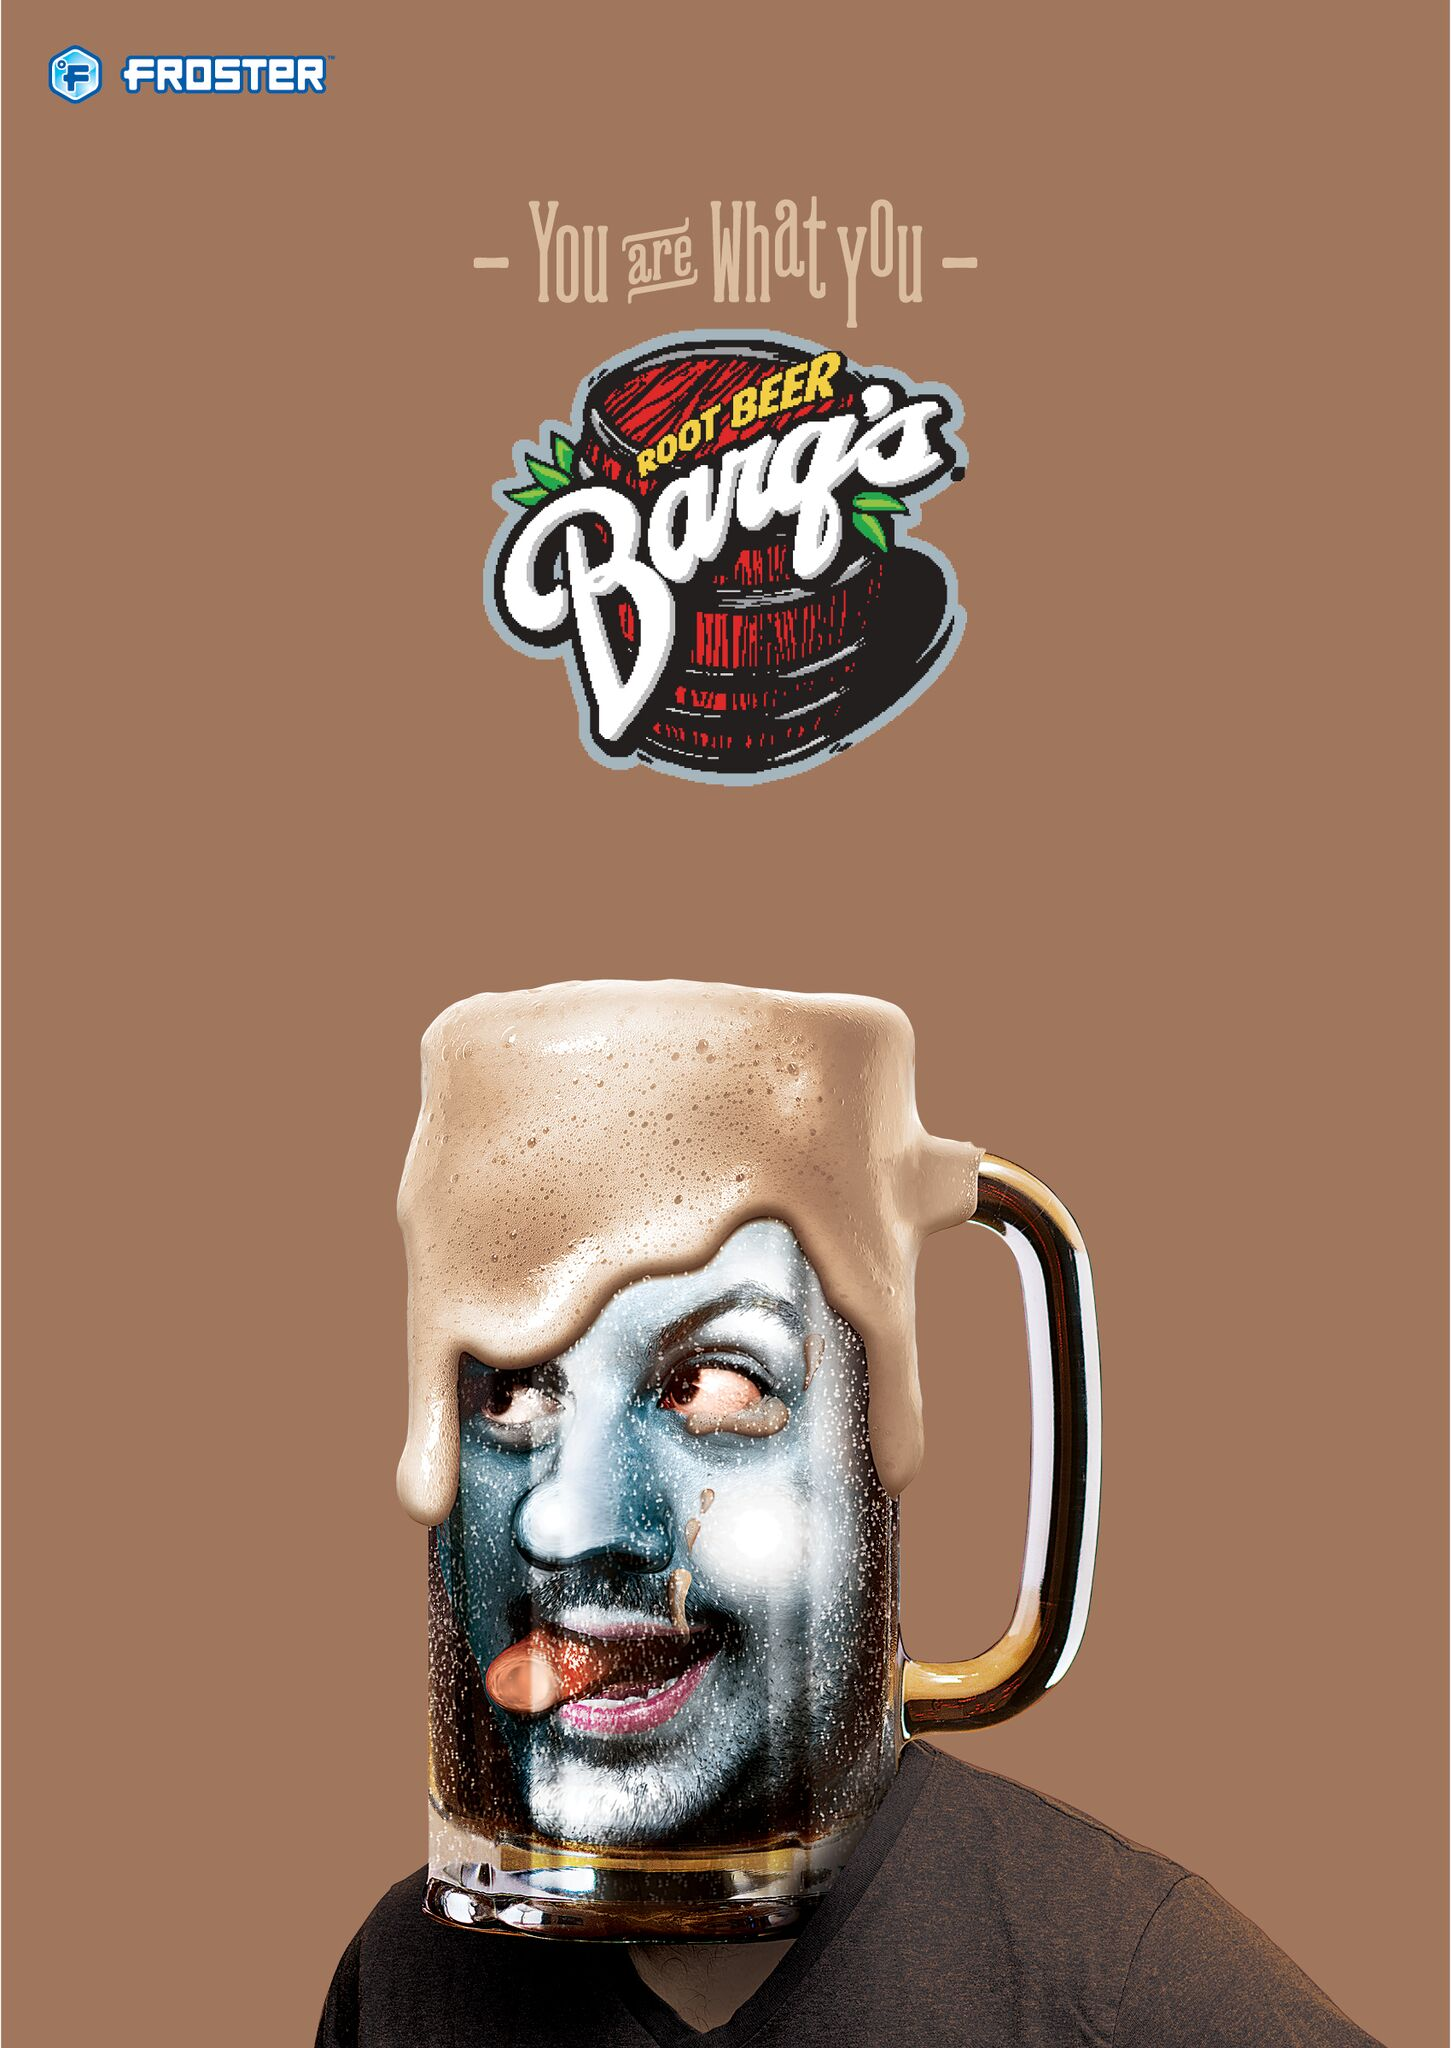 Mac's Froster - Barq's poster